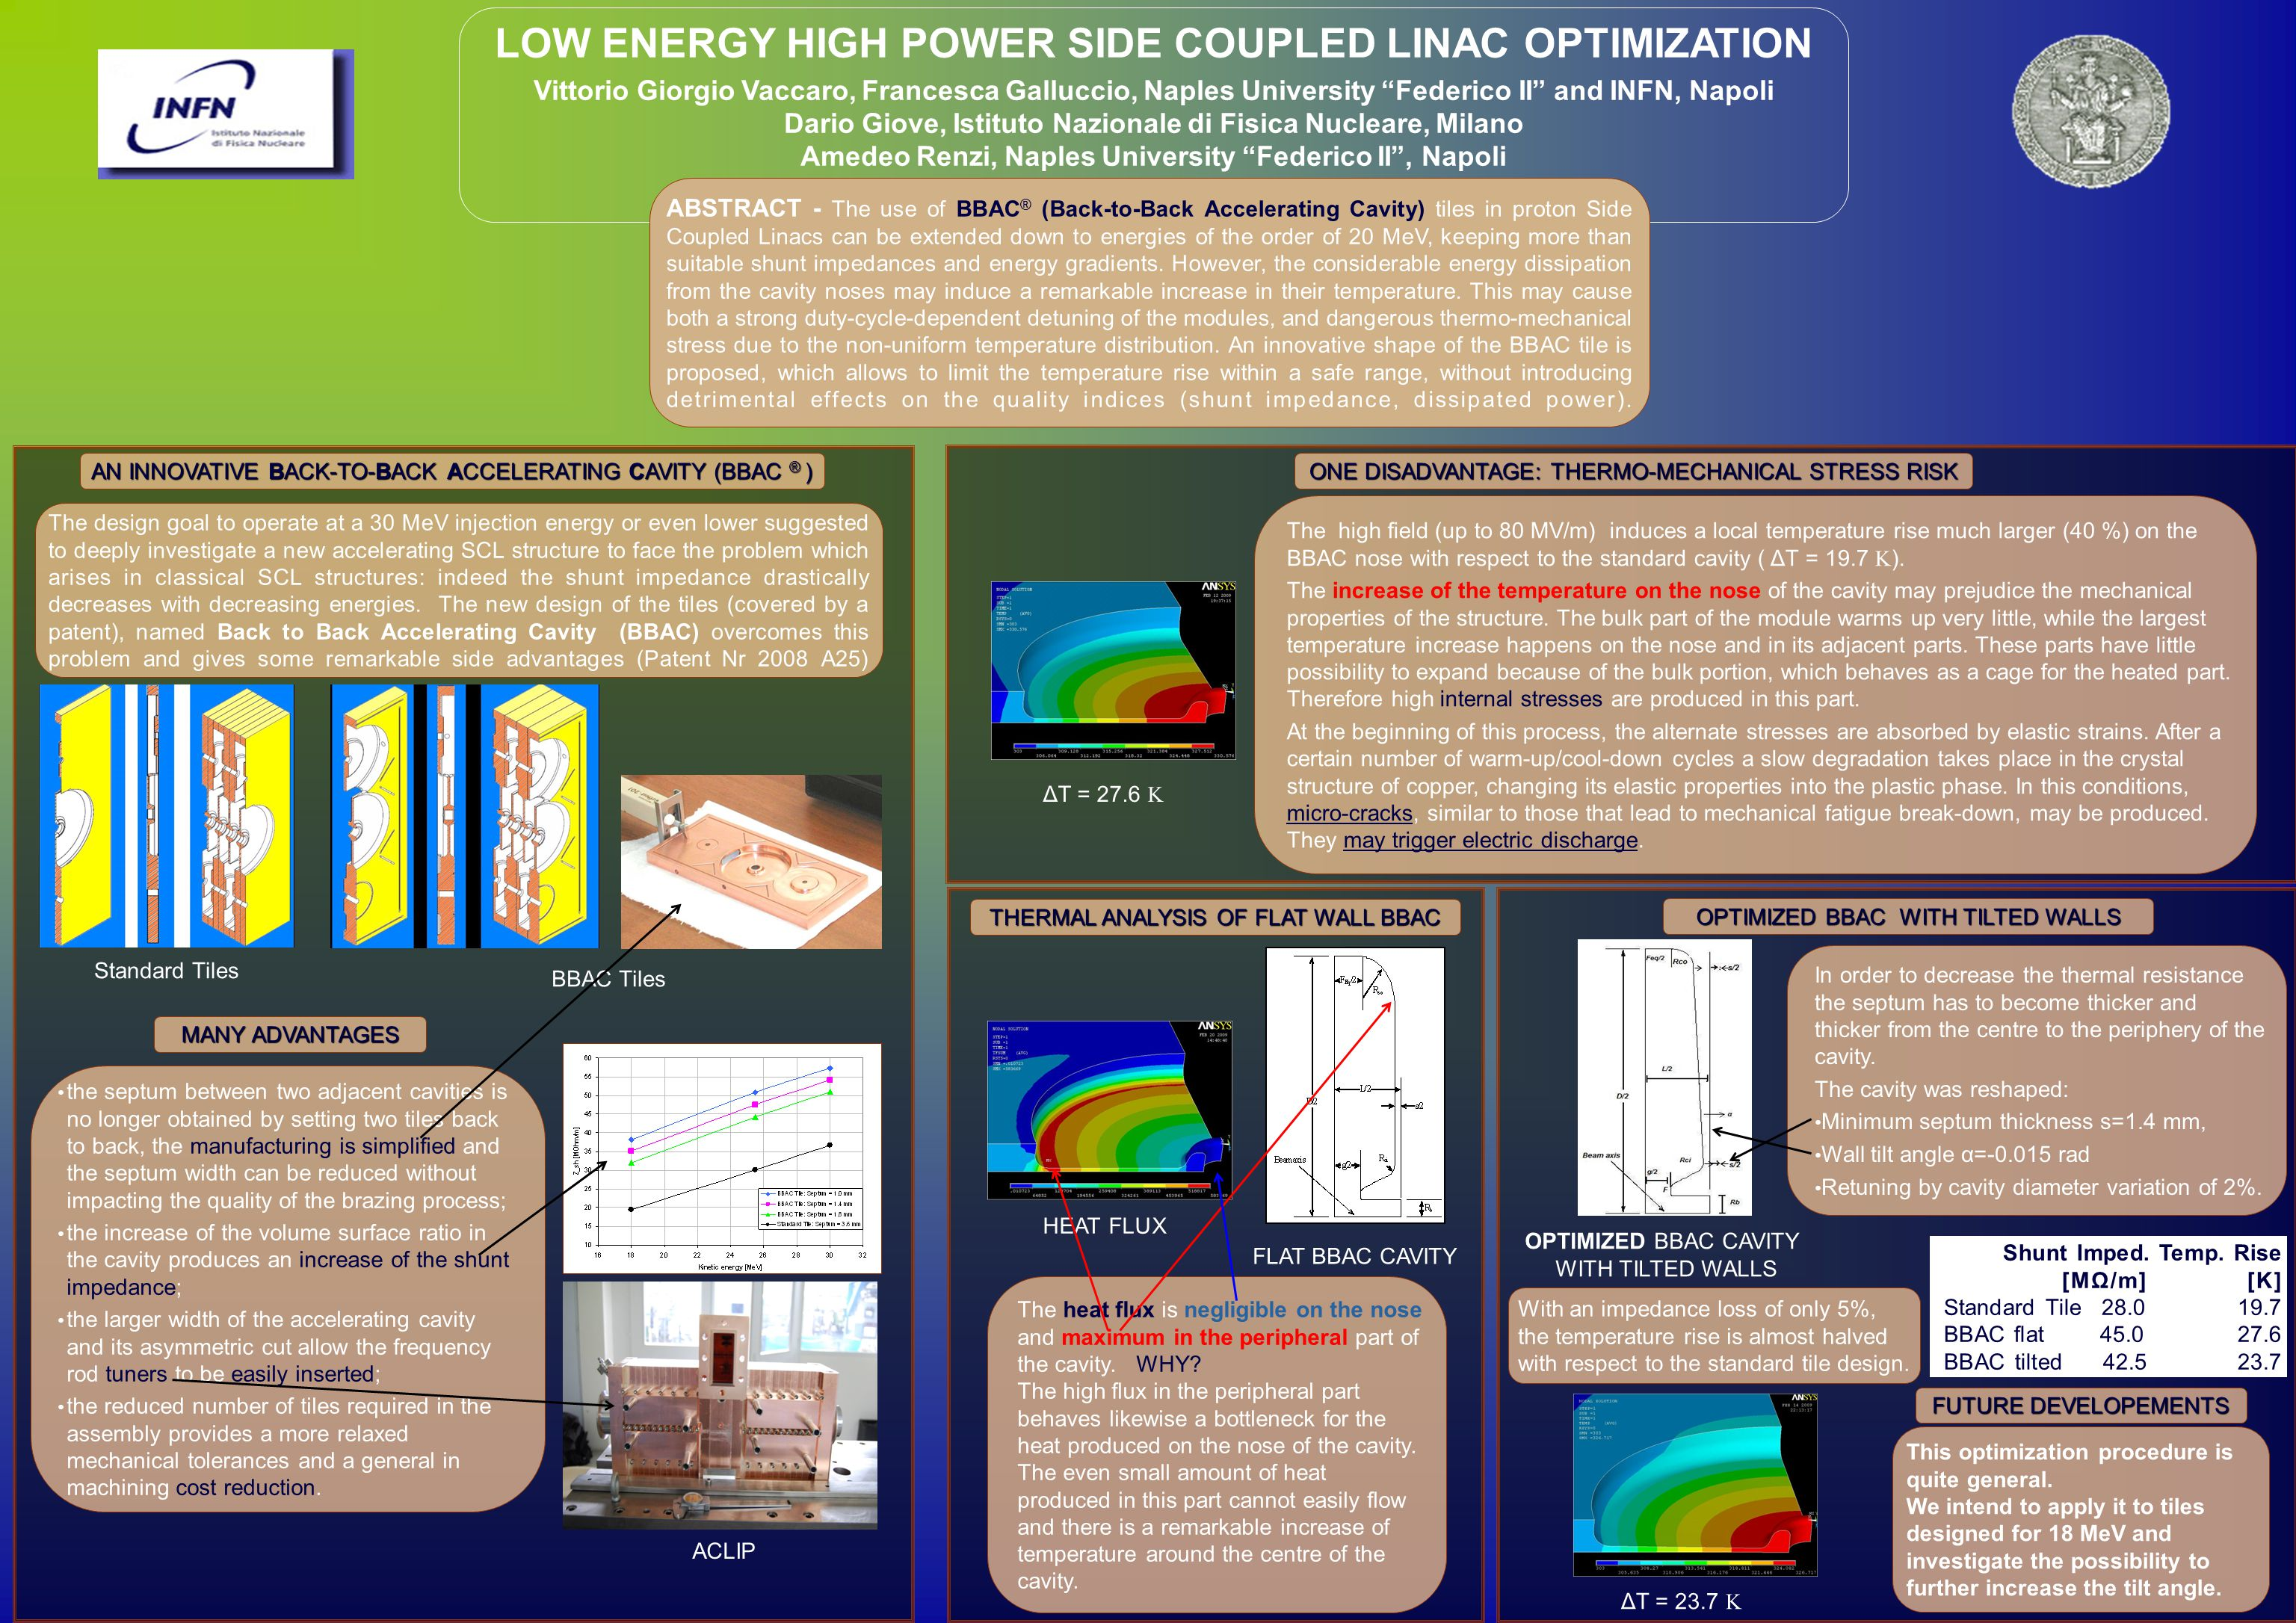 LOW ENERGY HIGH POWER SIDE COUPLED LINAC OPTIMIZATION Vittorio Giorgio Vaccaro, Francesca Galluccio, Naples University Federico II and INFN, Napoli Dario Giove, Istituto Nazionale di Fisica Nucleare, Milano Amedeo Renzi, Naples University Federico II, Napoli ABSTRACT - The use of BBAC ® (Back-to-Back Accelerating Cavity) tiles in proton Side Coupled Linacs can be extended down to energies of the order of 20 MeV, keeping more than suitable shunt impedances and energy gradients.